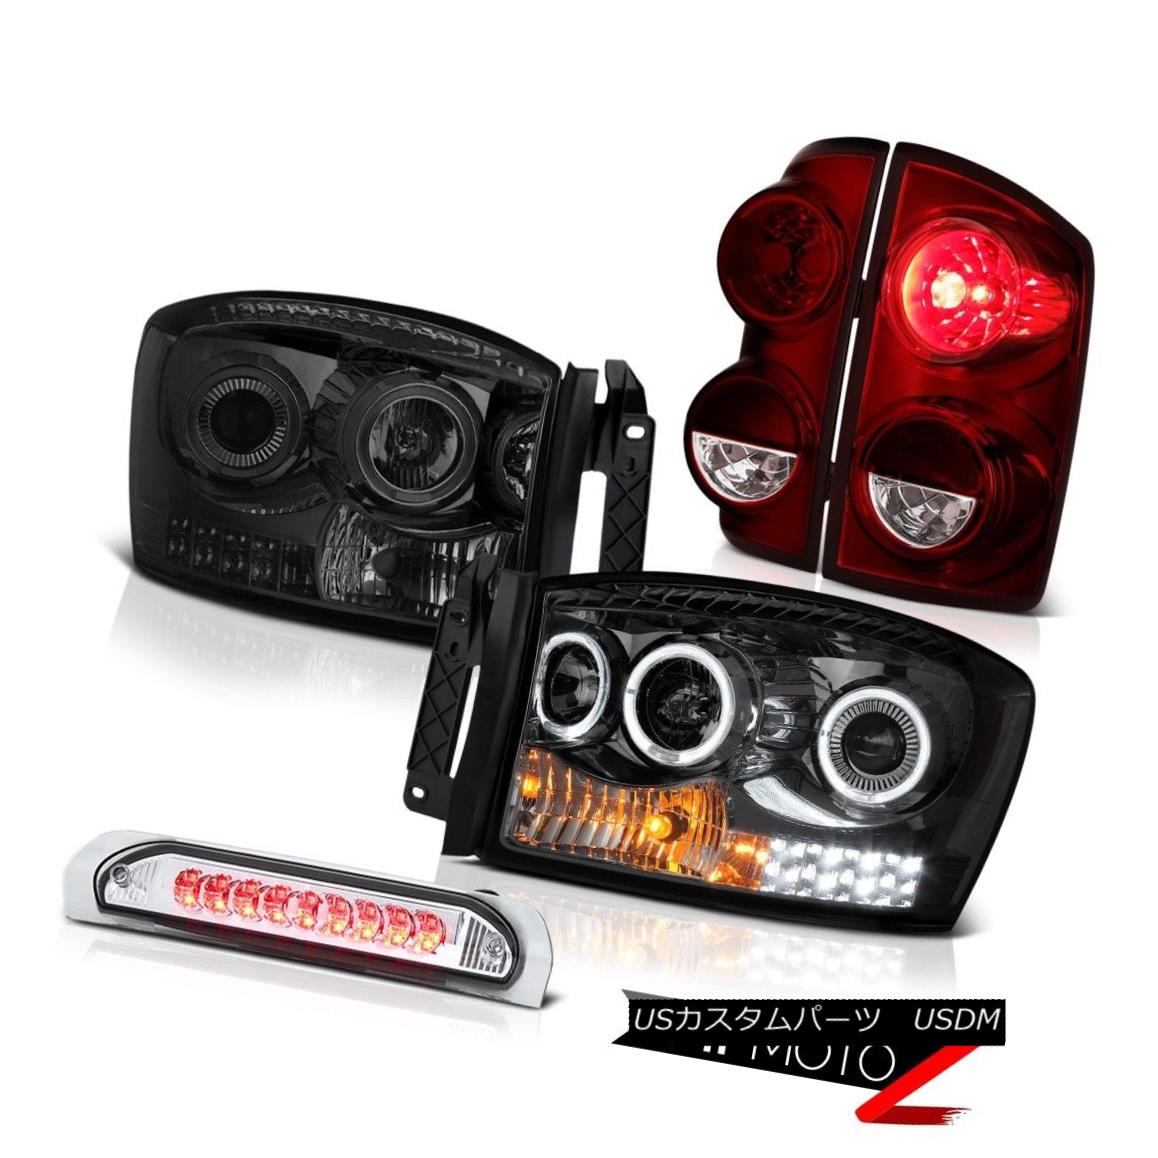 テールライト 2007-2008 Dodge Ram 1500 WS Tail Lights Smoked Headlamps High STop Lamp Oe STyle 2007-2008 Dodge Ram 1500 WSテールライトスモークヘッドランプHigh STop Lamp Oe Style